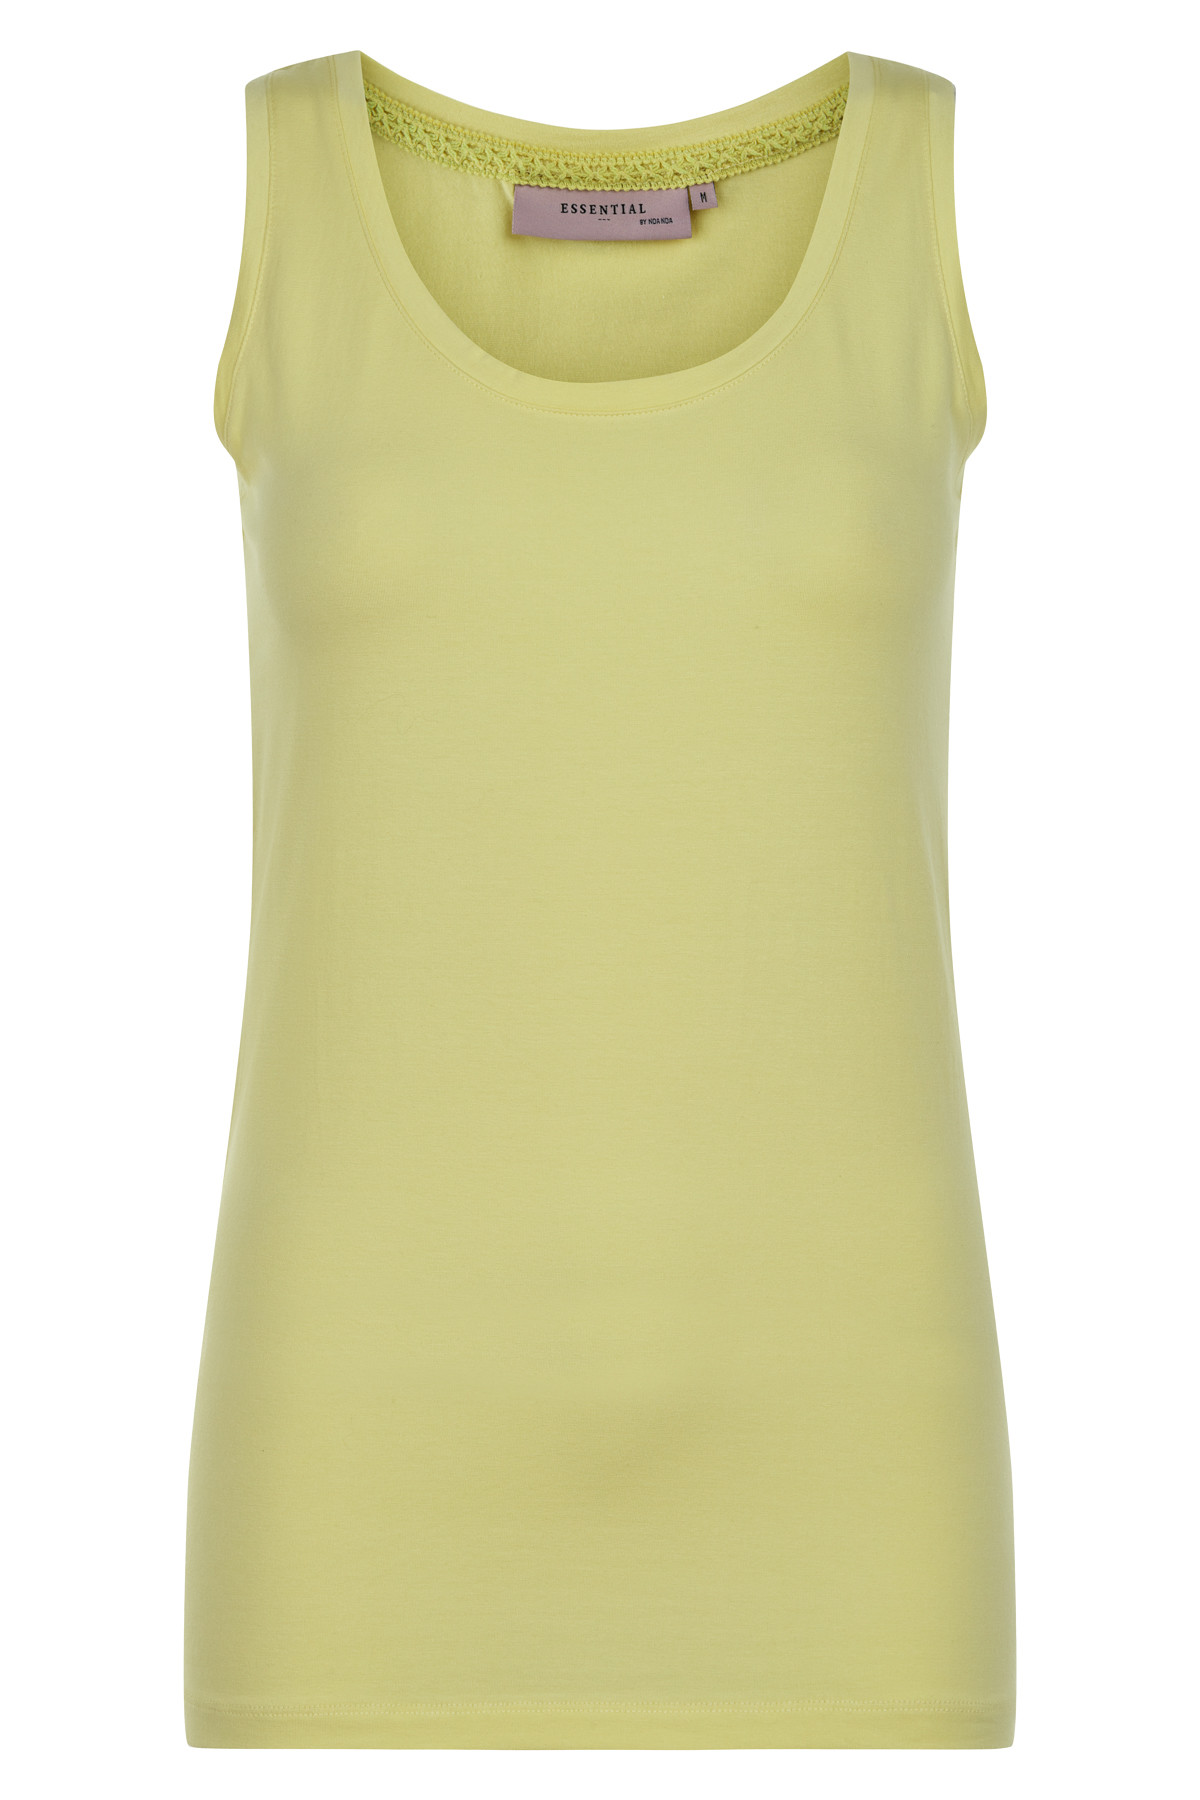 NOA NOA TOP 1-5271-25 01053 (Yellow, XXS)